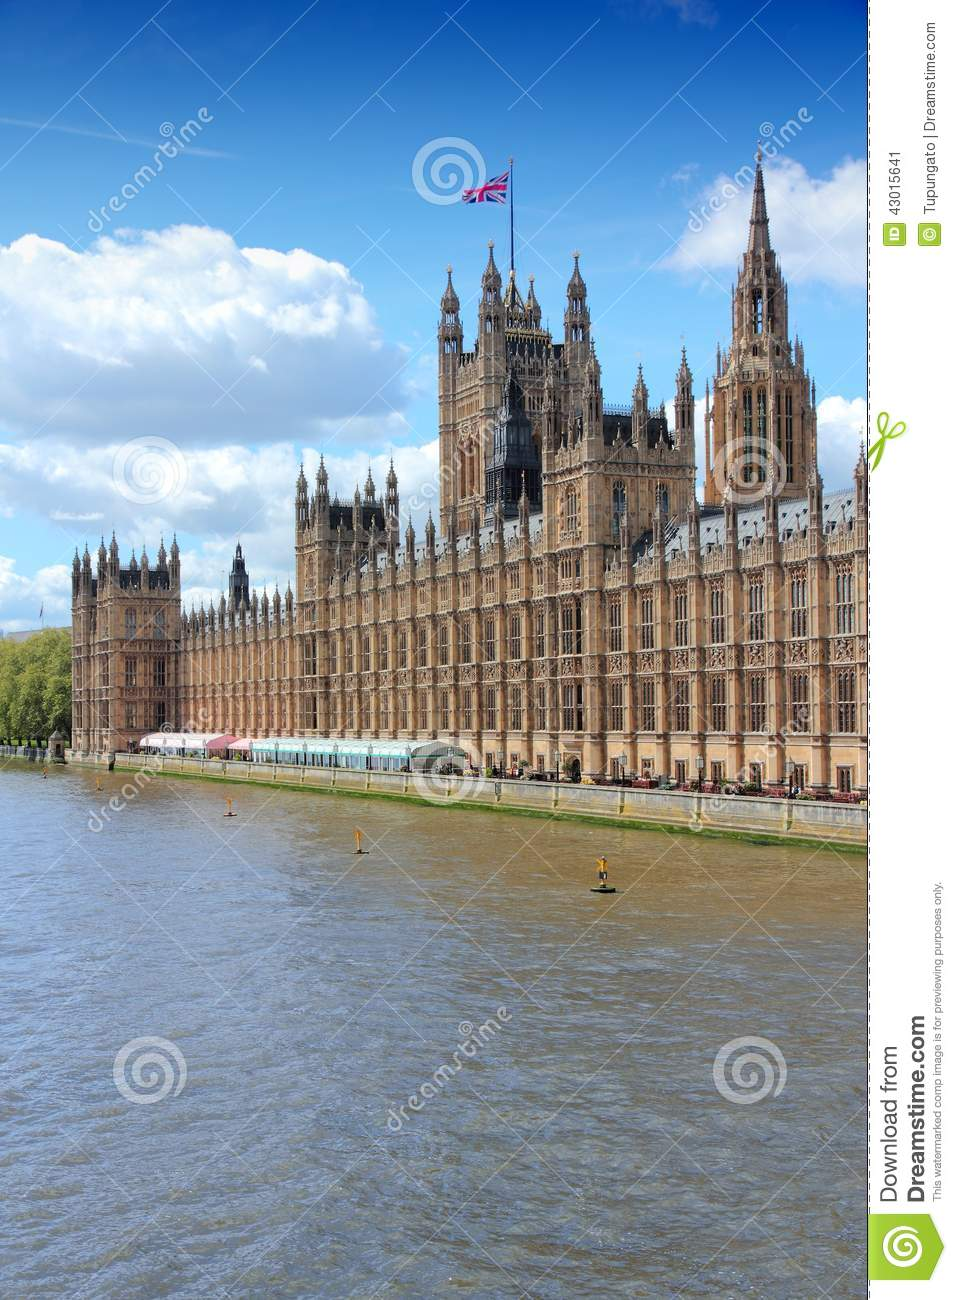 London stock photo image 43015641 for Parliament site